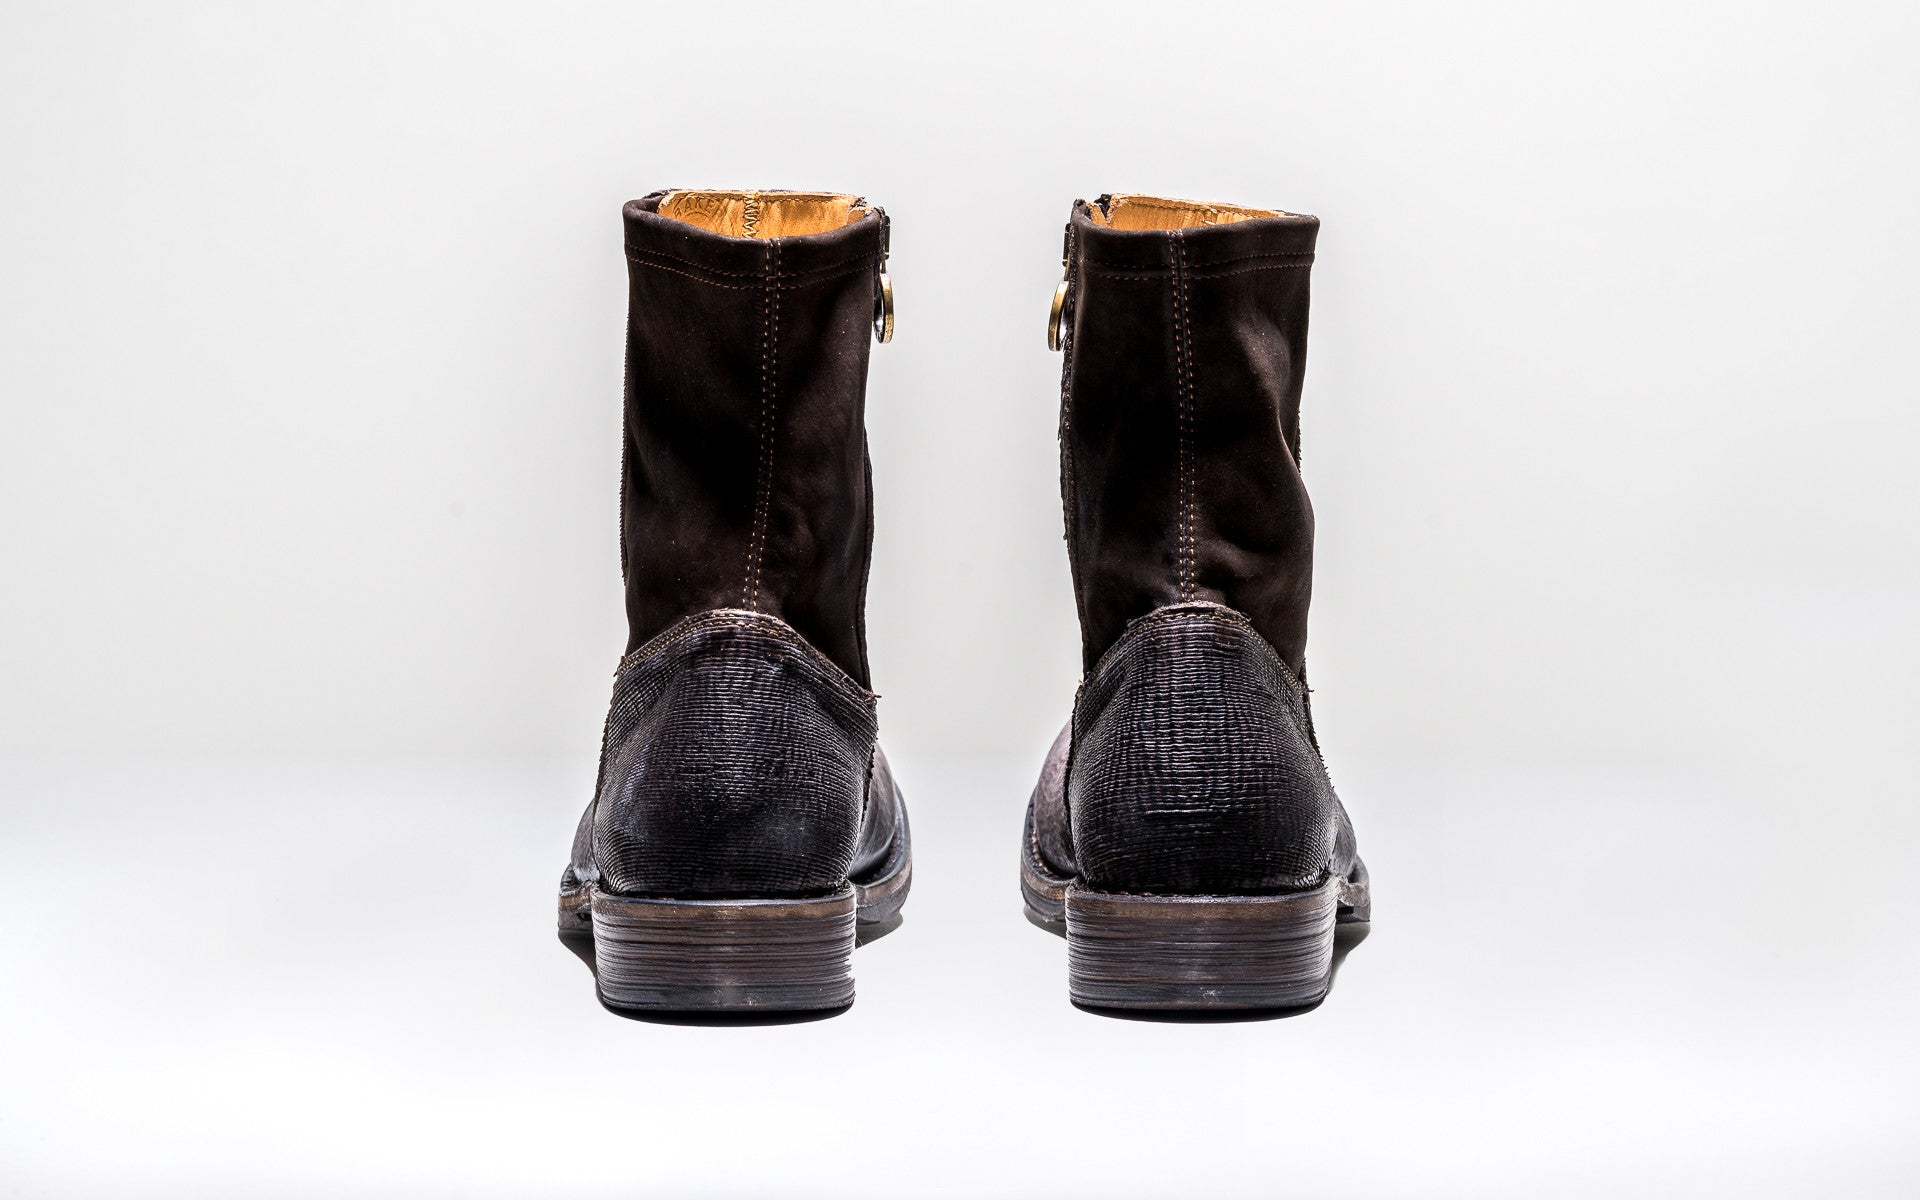 Eternity_Ebe_HighAnkleBoot_DarkBrown_LaserCutLeather